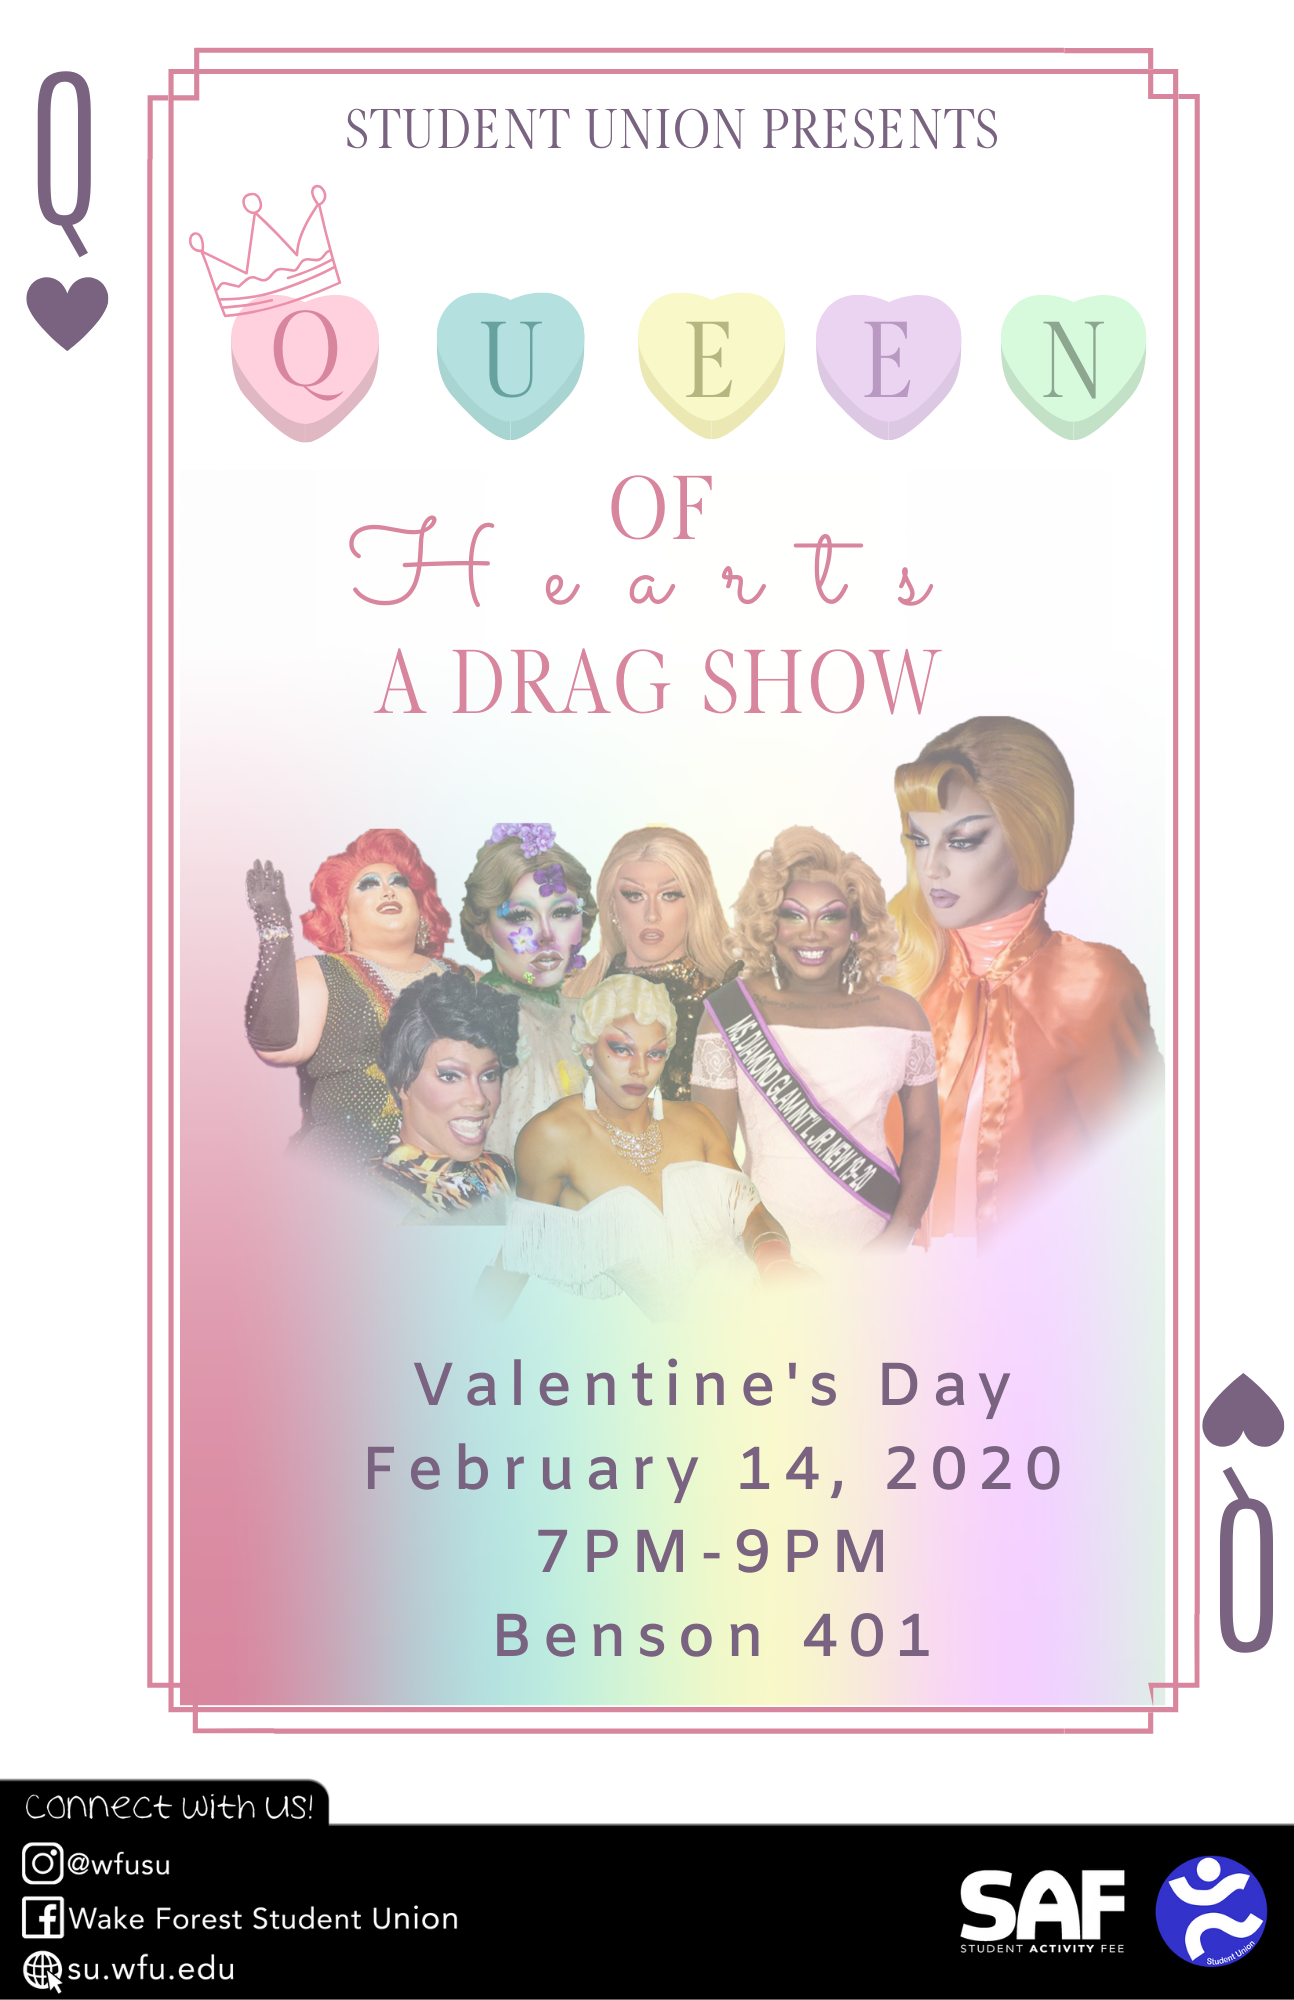 Flyer for the Student Union's annual Drag Show